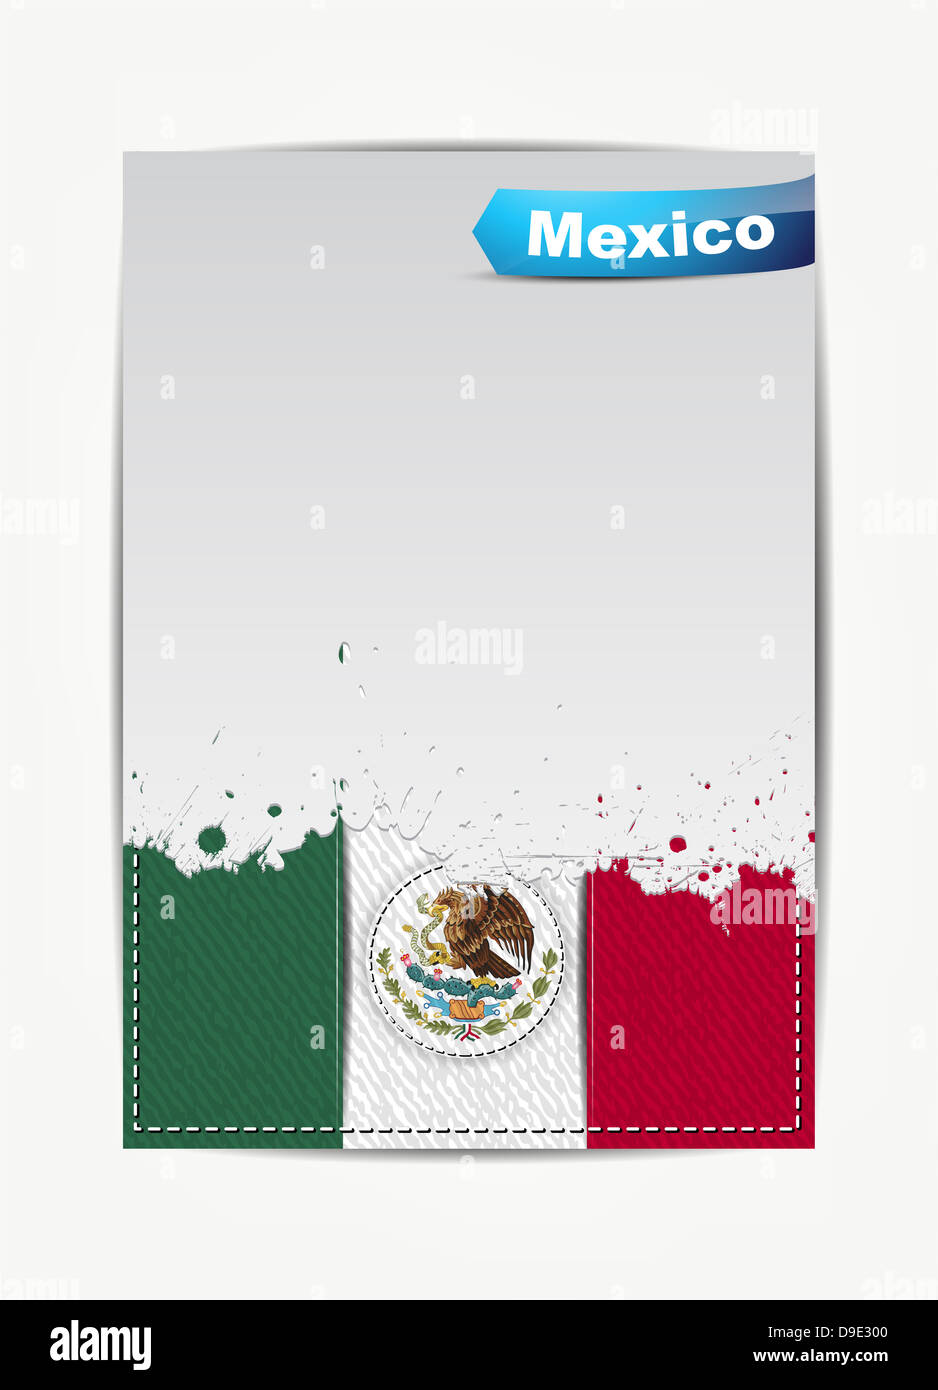 Stitched Mexico flag with grunge paper frame for your text with the name of the country. - Stock Image